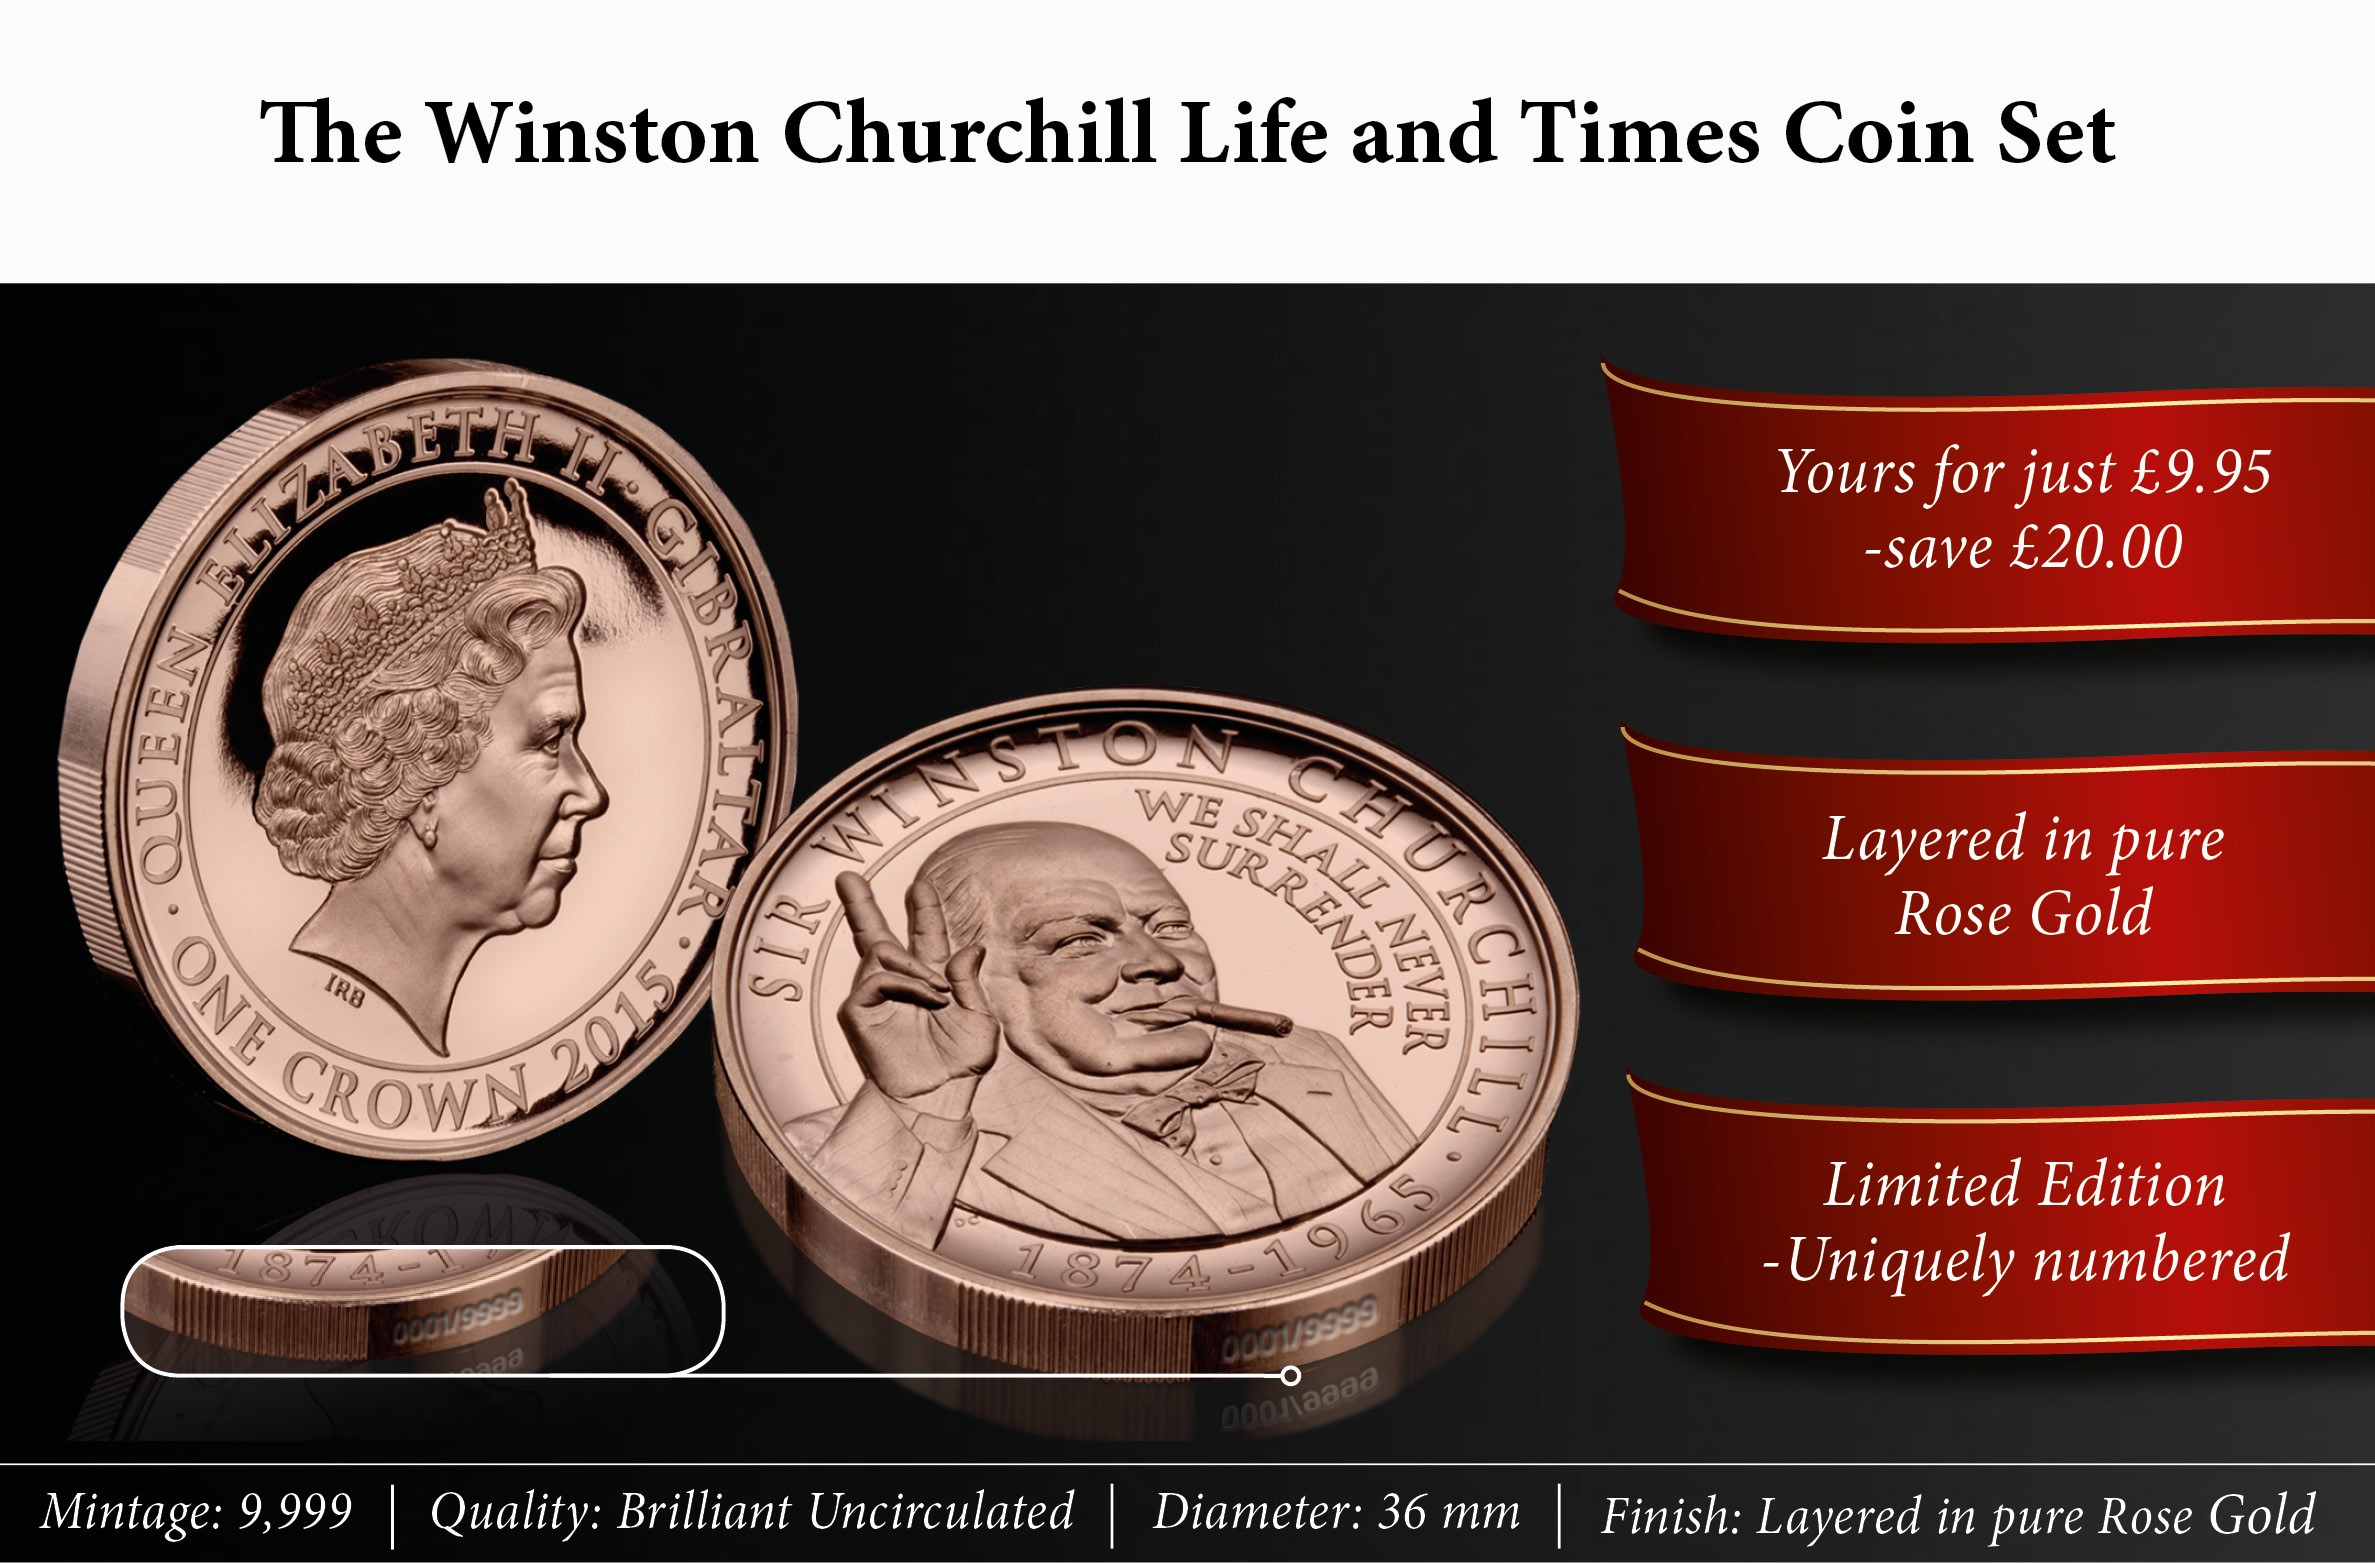 The Winston Churchill Life and Times Coin Collection